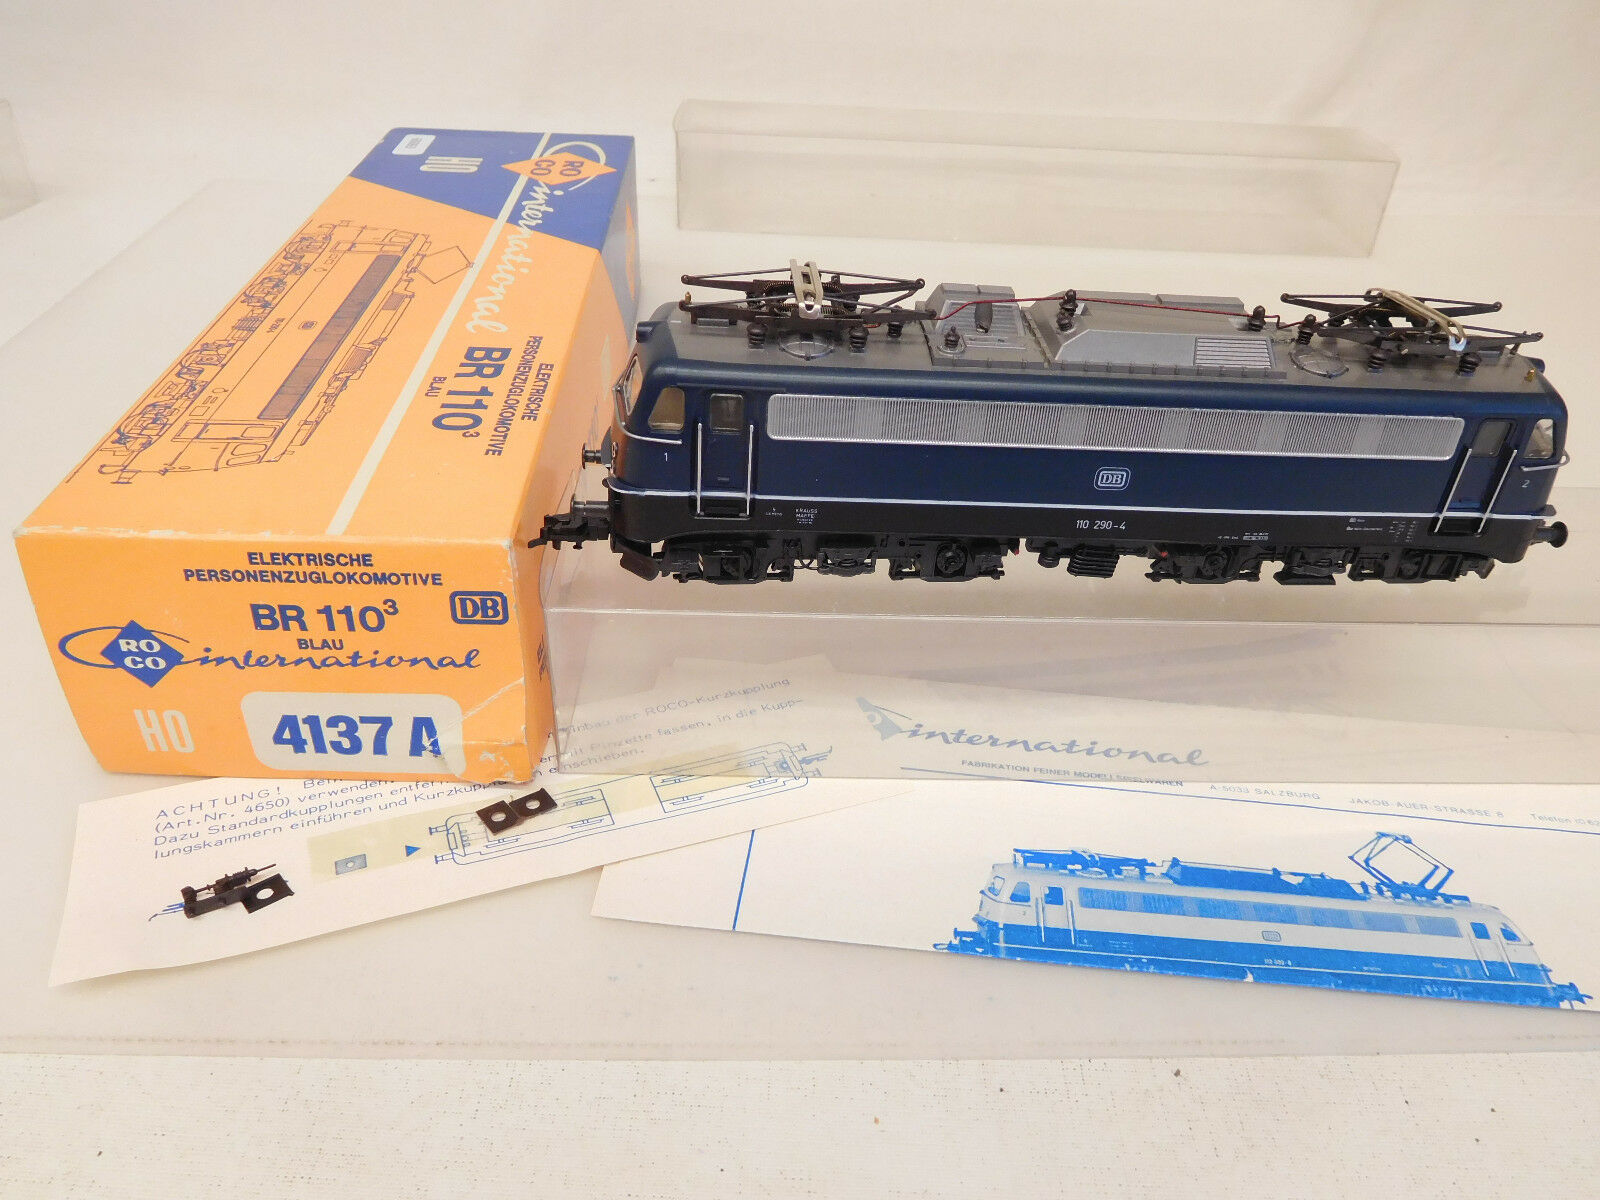 Mes-60063 Roco 4137 a h0 E-LOK DB 110 290-4, chassis and zurüstteil Loose